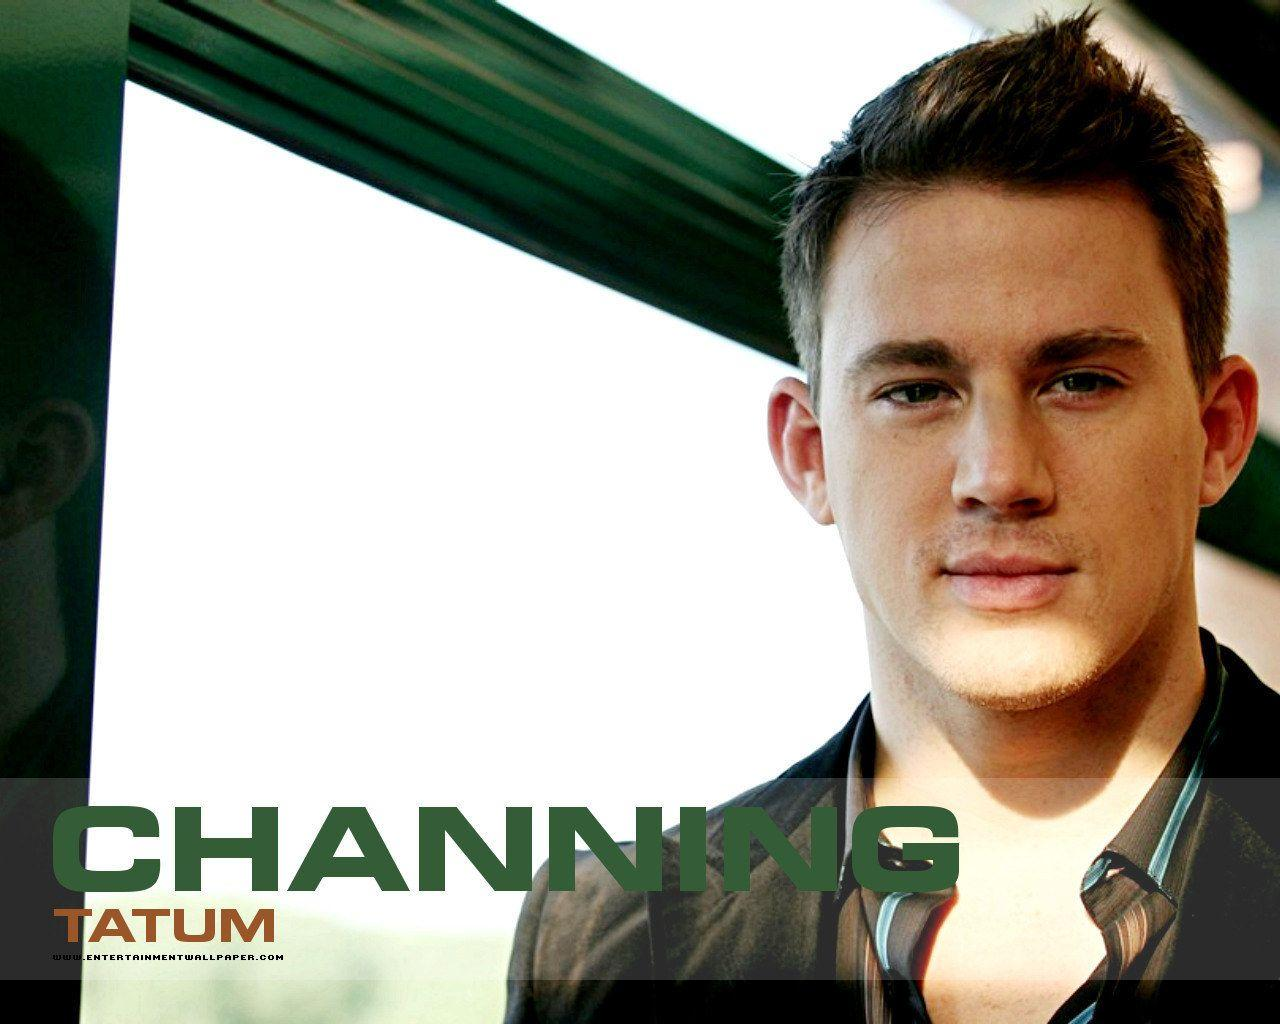 channing tatum wallpapers - wallpaper cave